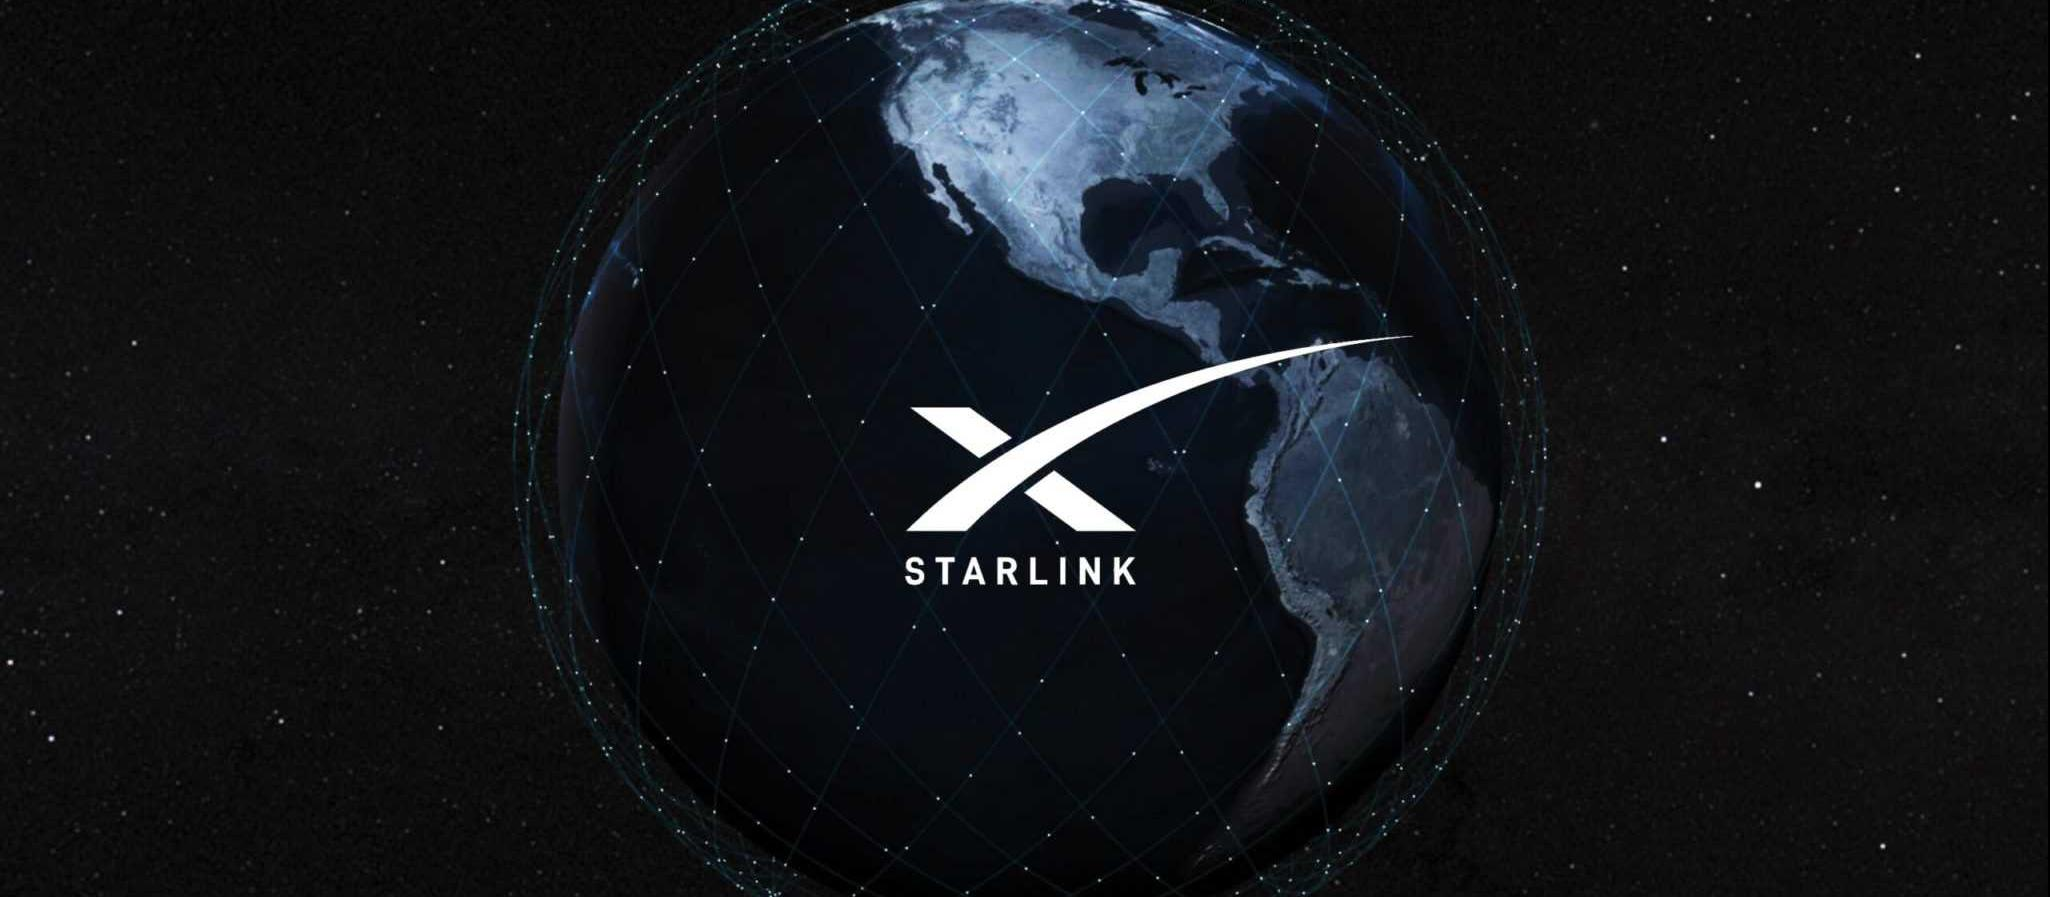 Musk's Starlink is the biggest tech game-changer in history and will kill the cable industry (conservativehardliner.com)